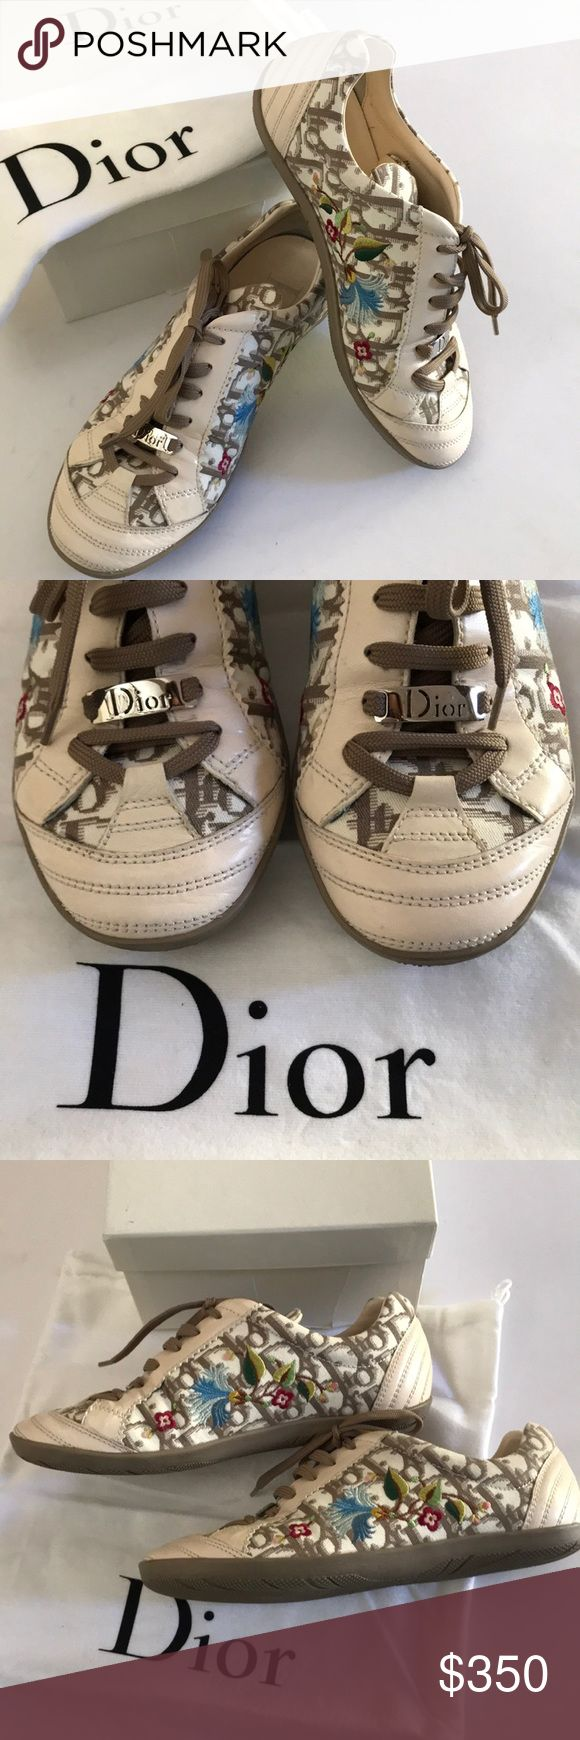 Christian Dior Sport Floral Sneakers- Like New Feminine charm and unmatched comfort. Crafter from a subtle combination of chiefs monogrammed canvas and leather, these sport sneakers matching laces and shoe arches. Accented with multi colored floral embroidery. Leather insoles with brand detail. Tan lace up closure and silver Dior embellishment. Like new condition. Only worn once.  Dust bag and box included. Christian Dior Shoes Sneakers